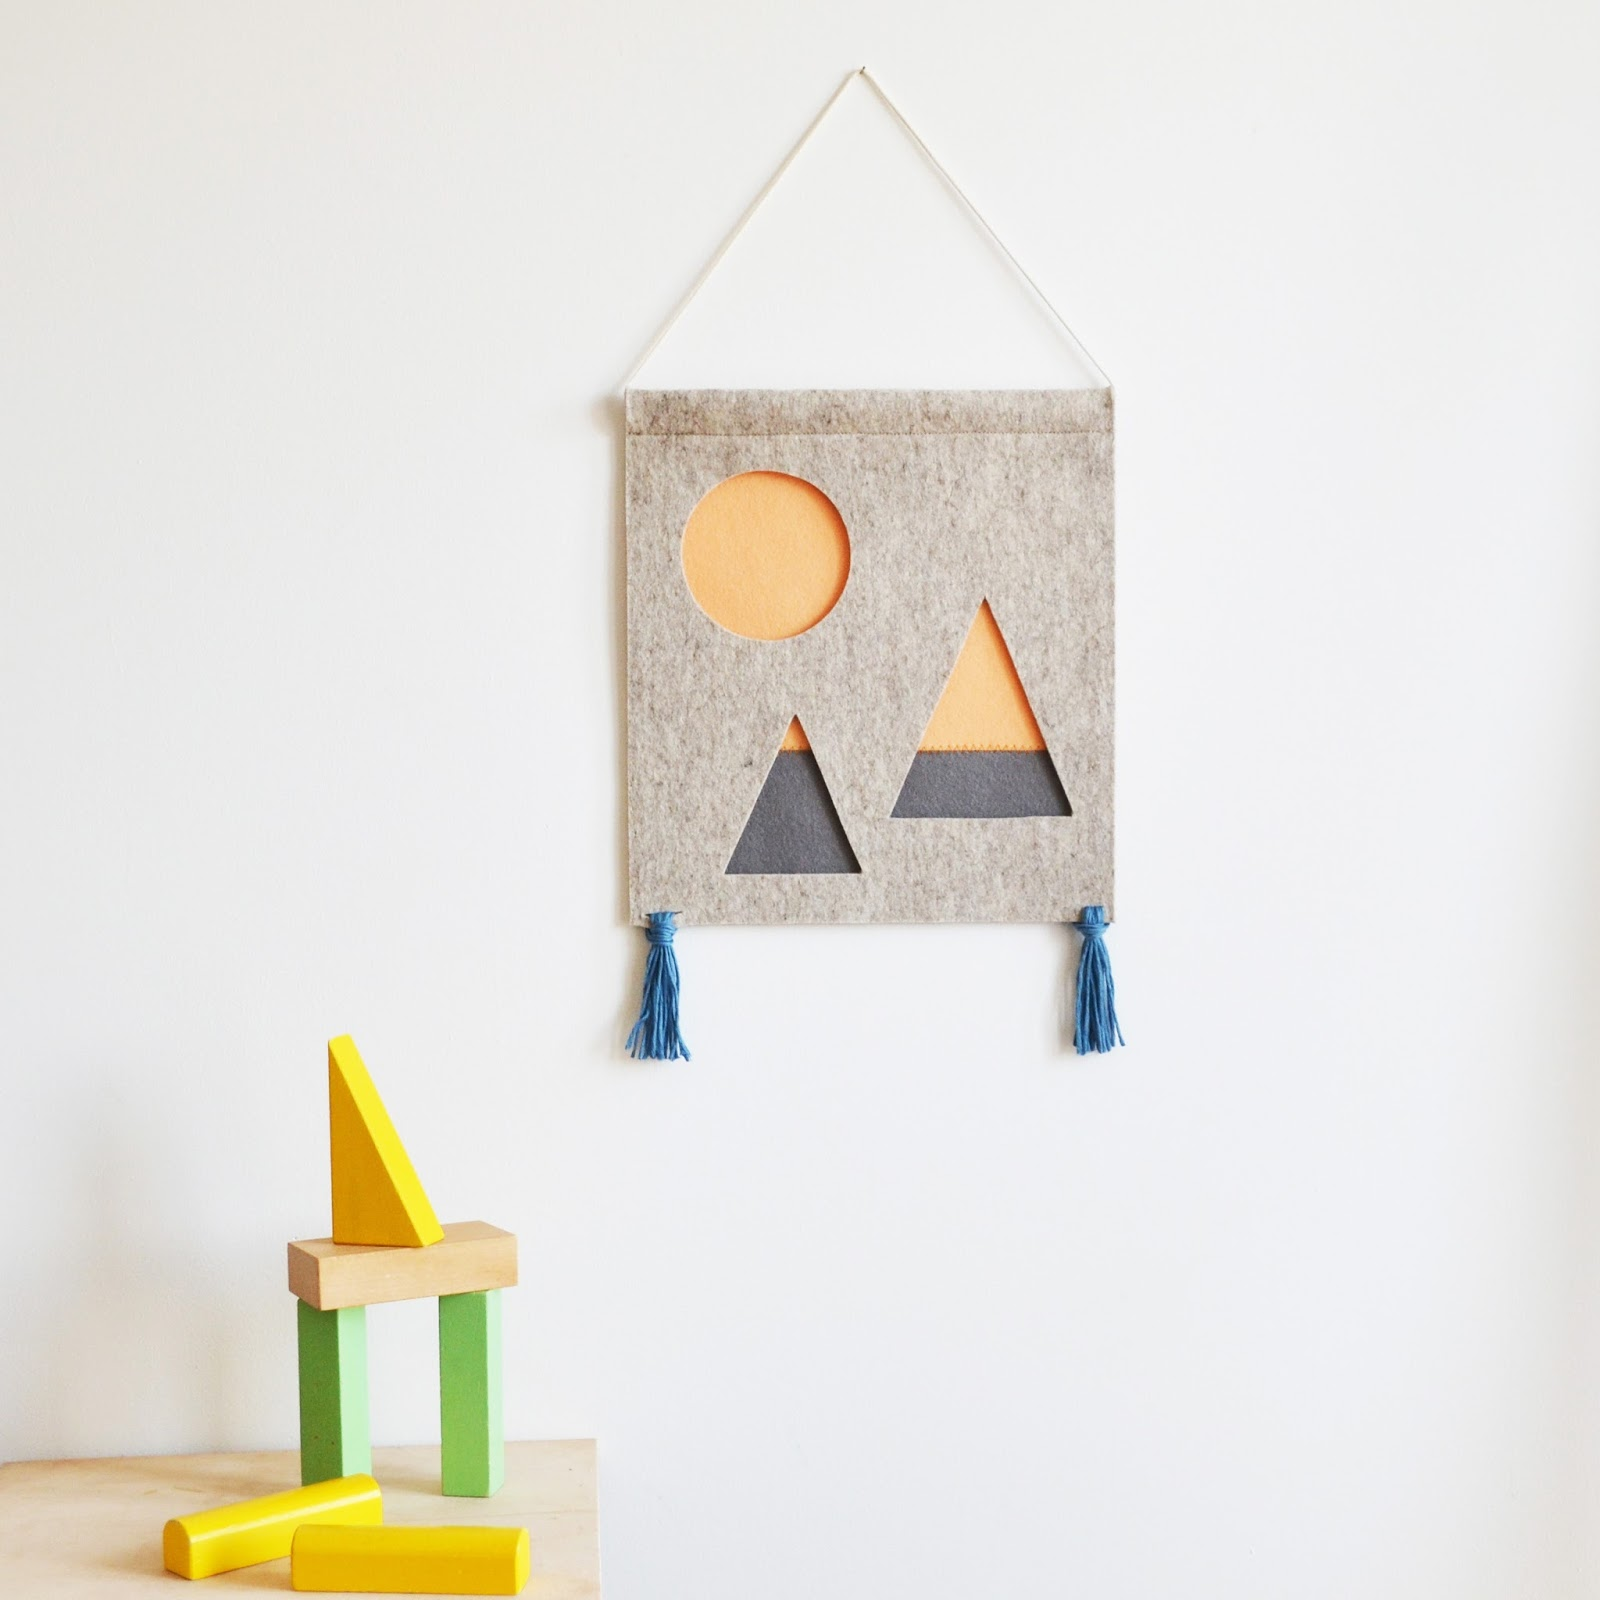 a alicia new handmade wall hangings for kids and babies